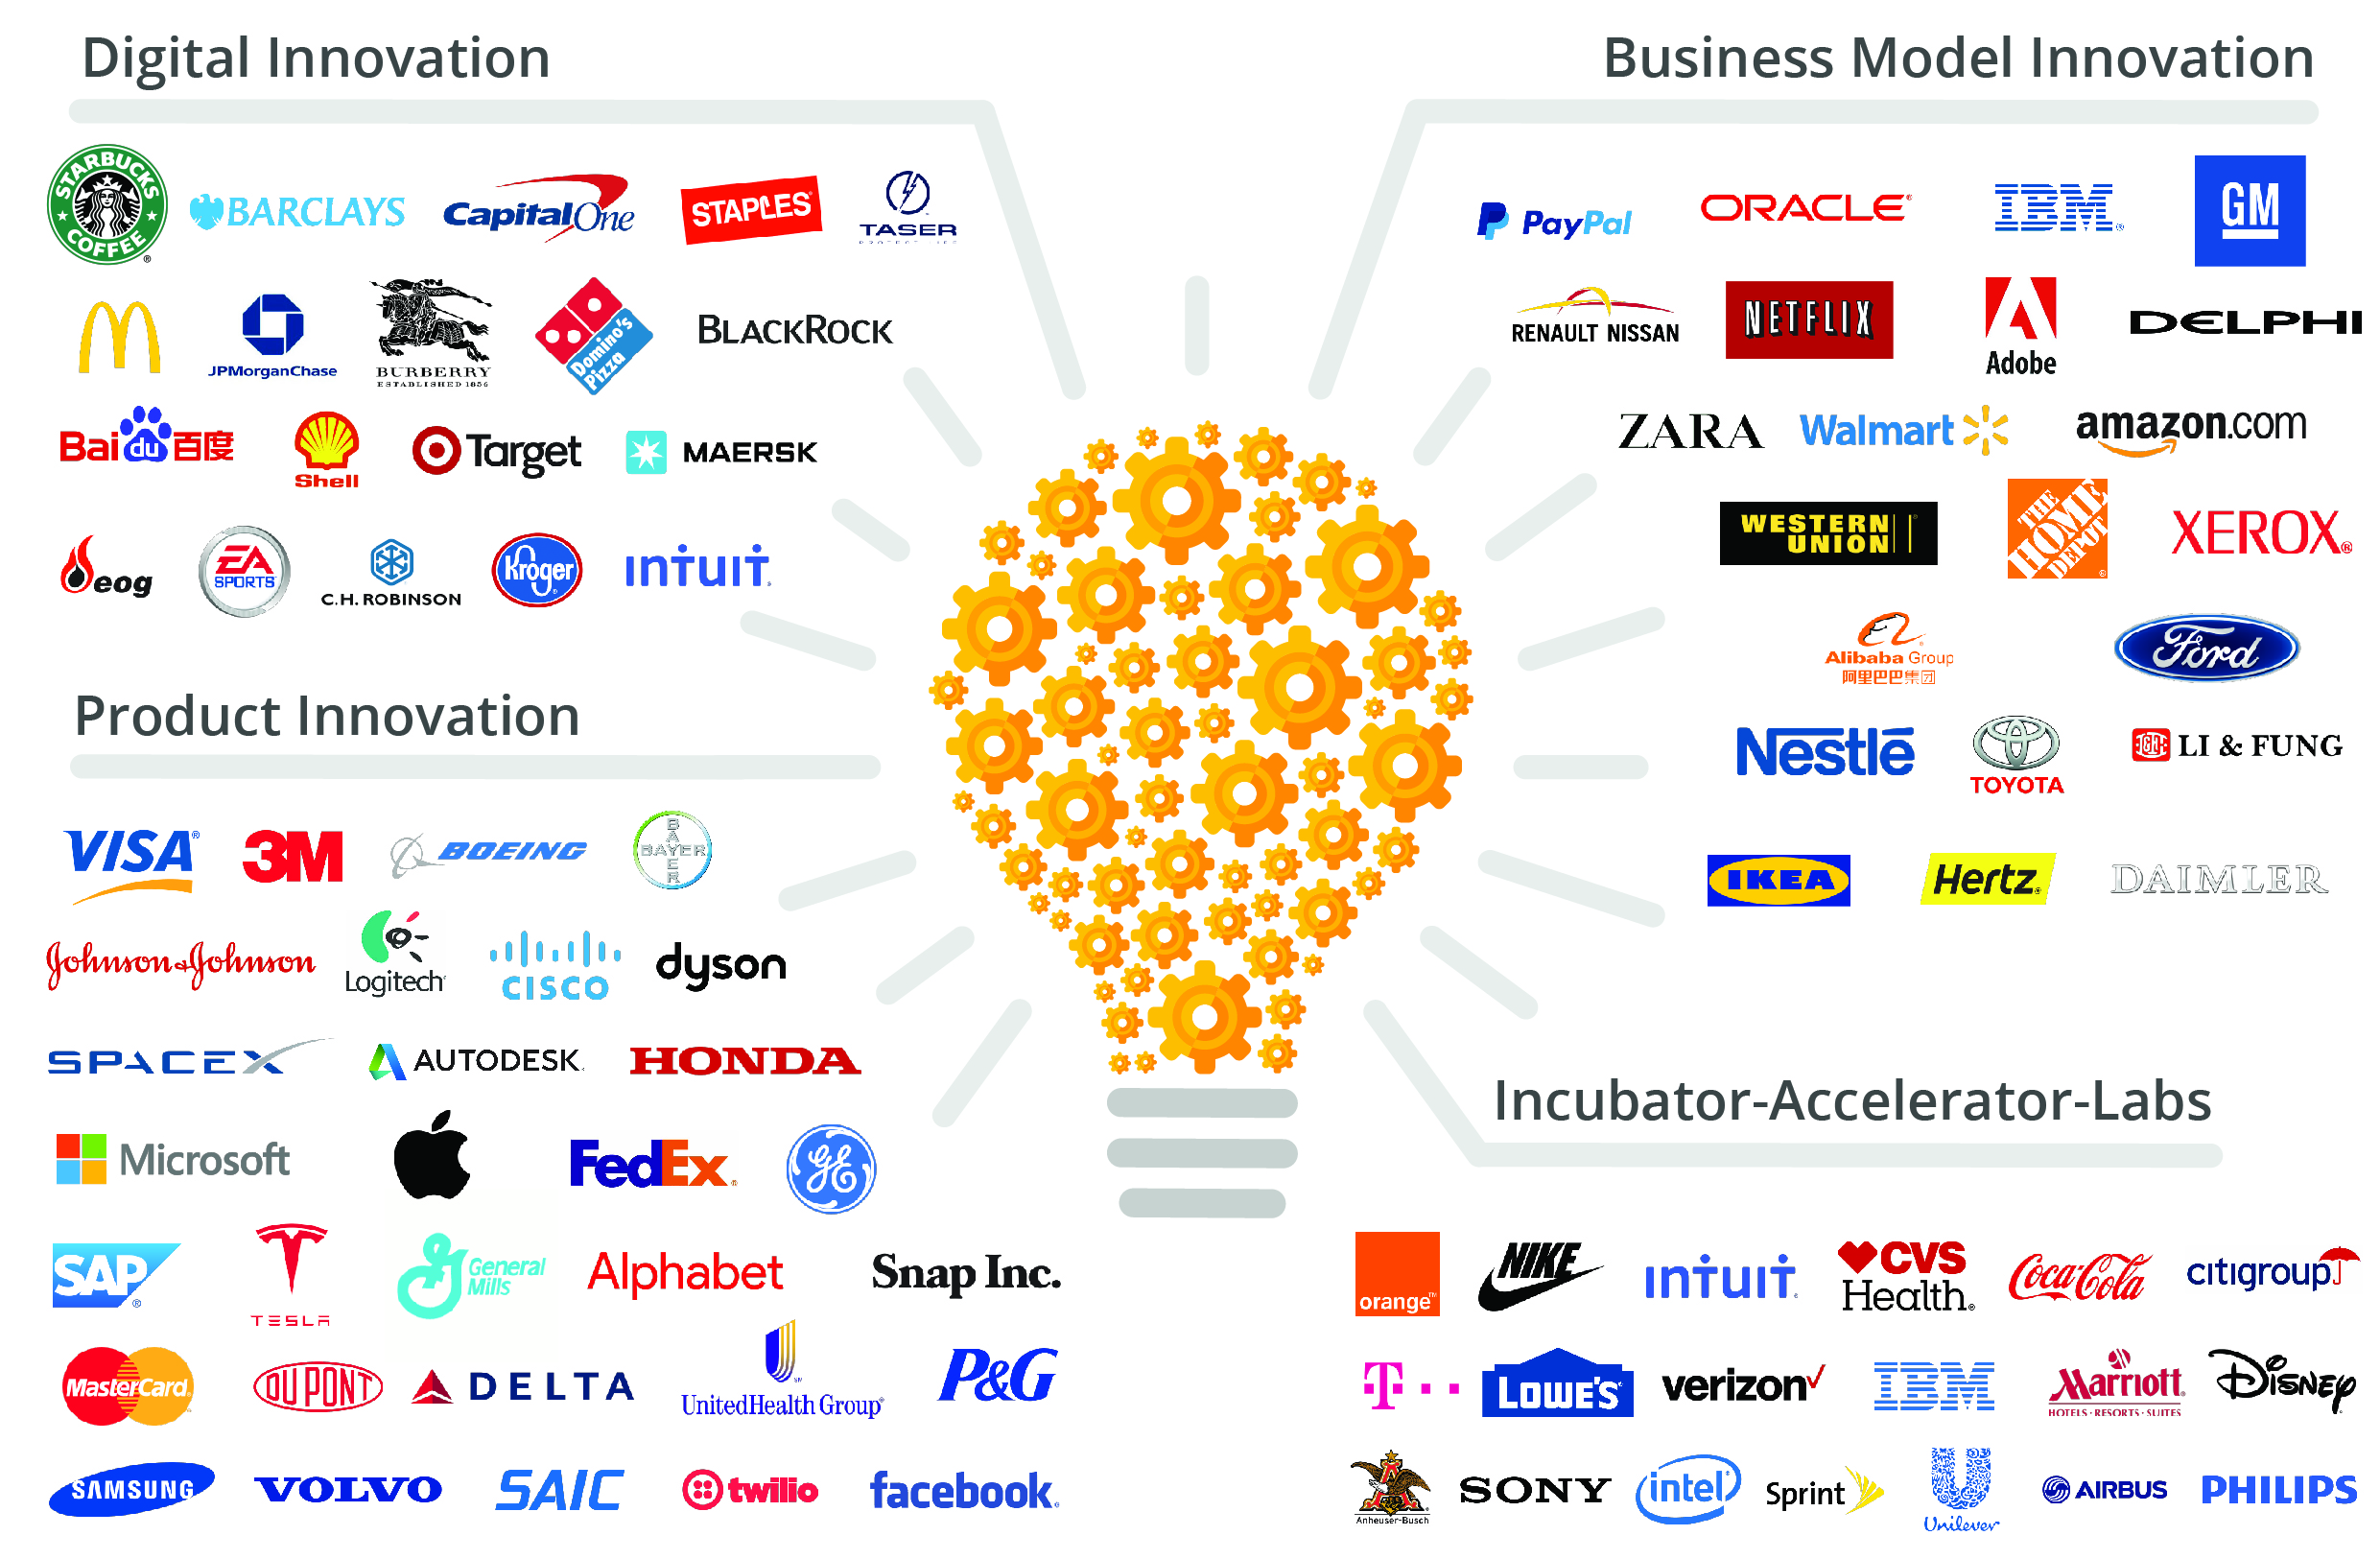 Global Innovation Trends: How corporations are responding